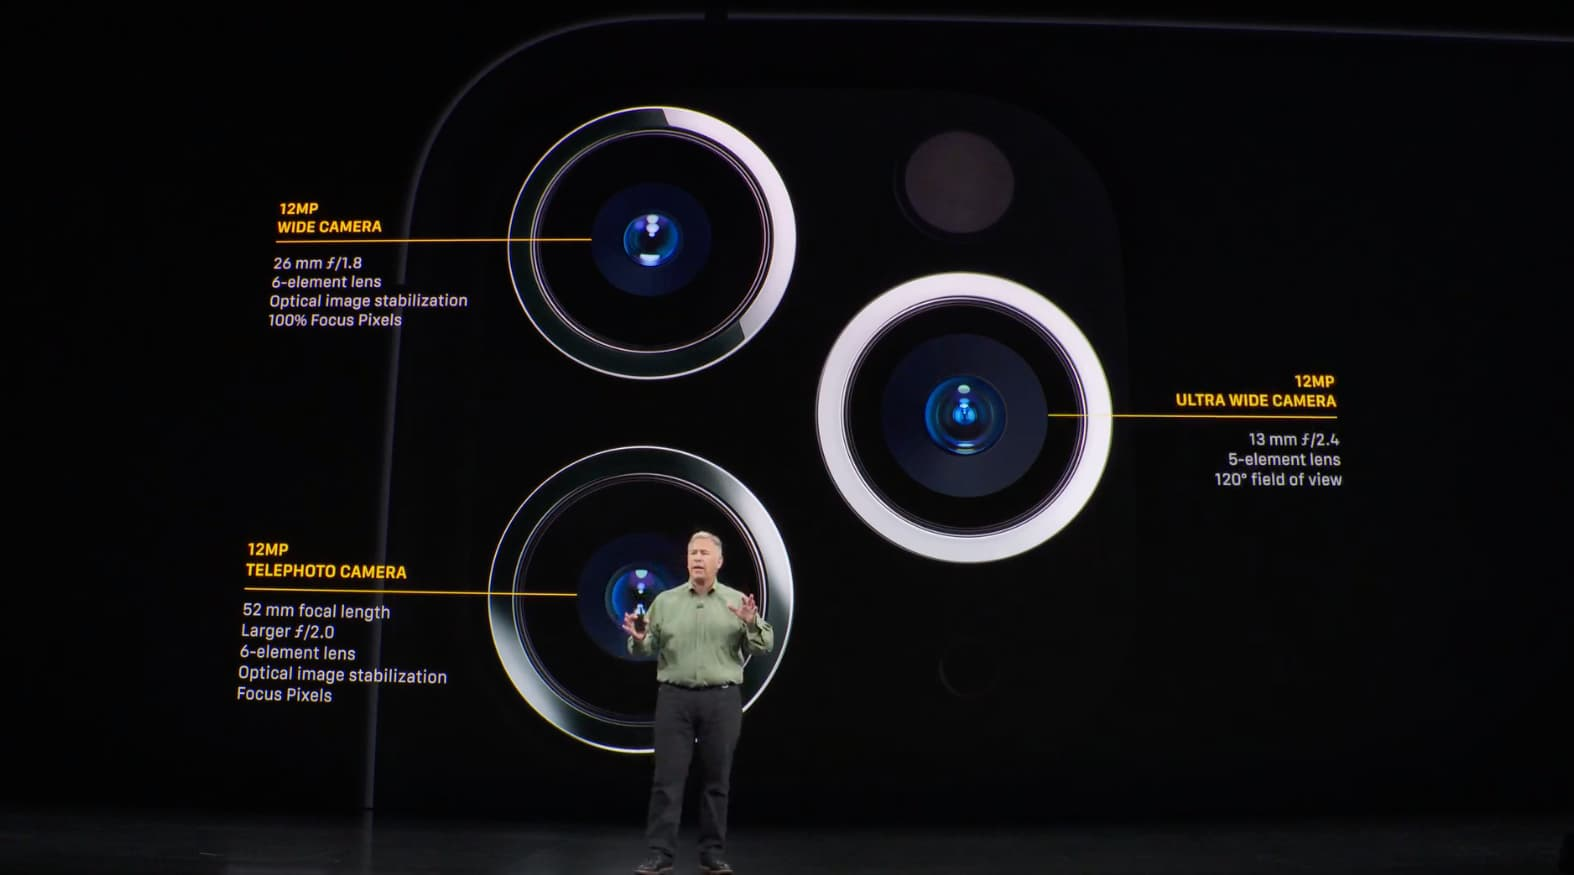 Apple breaks down the specs of the three rear cameras in iPhone 11 Pro